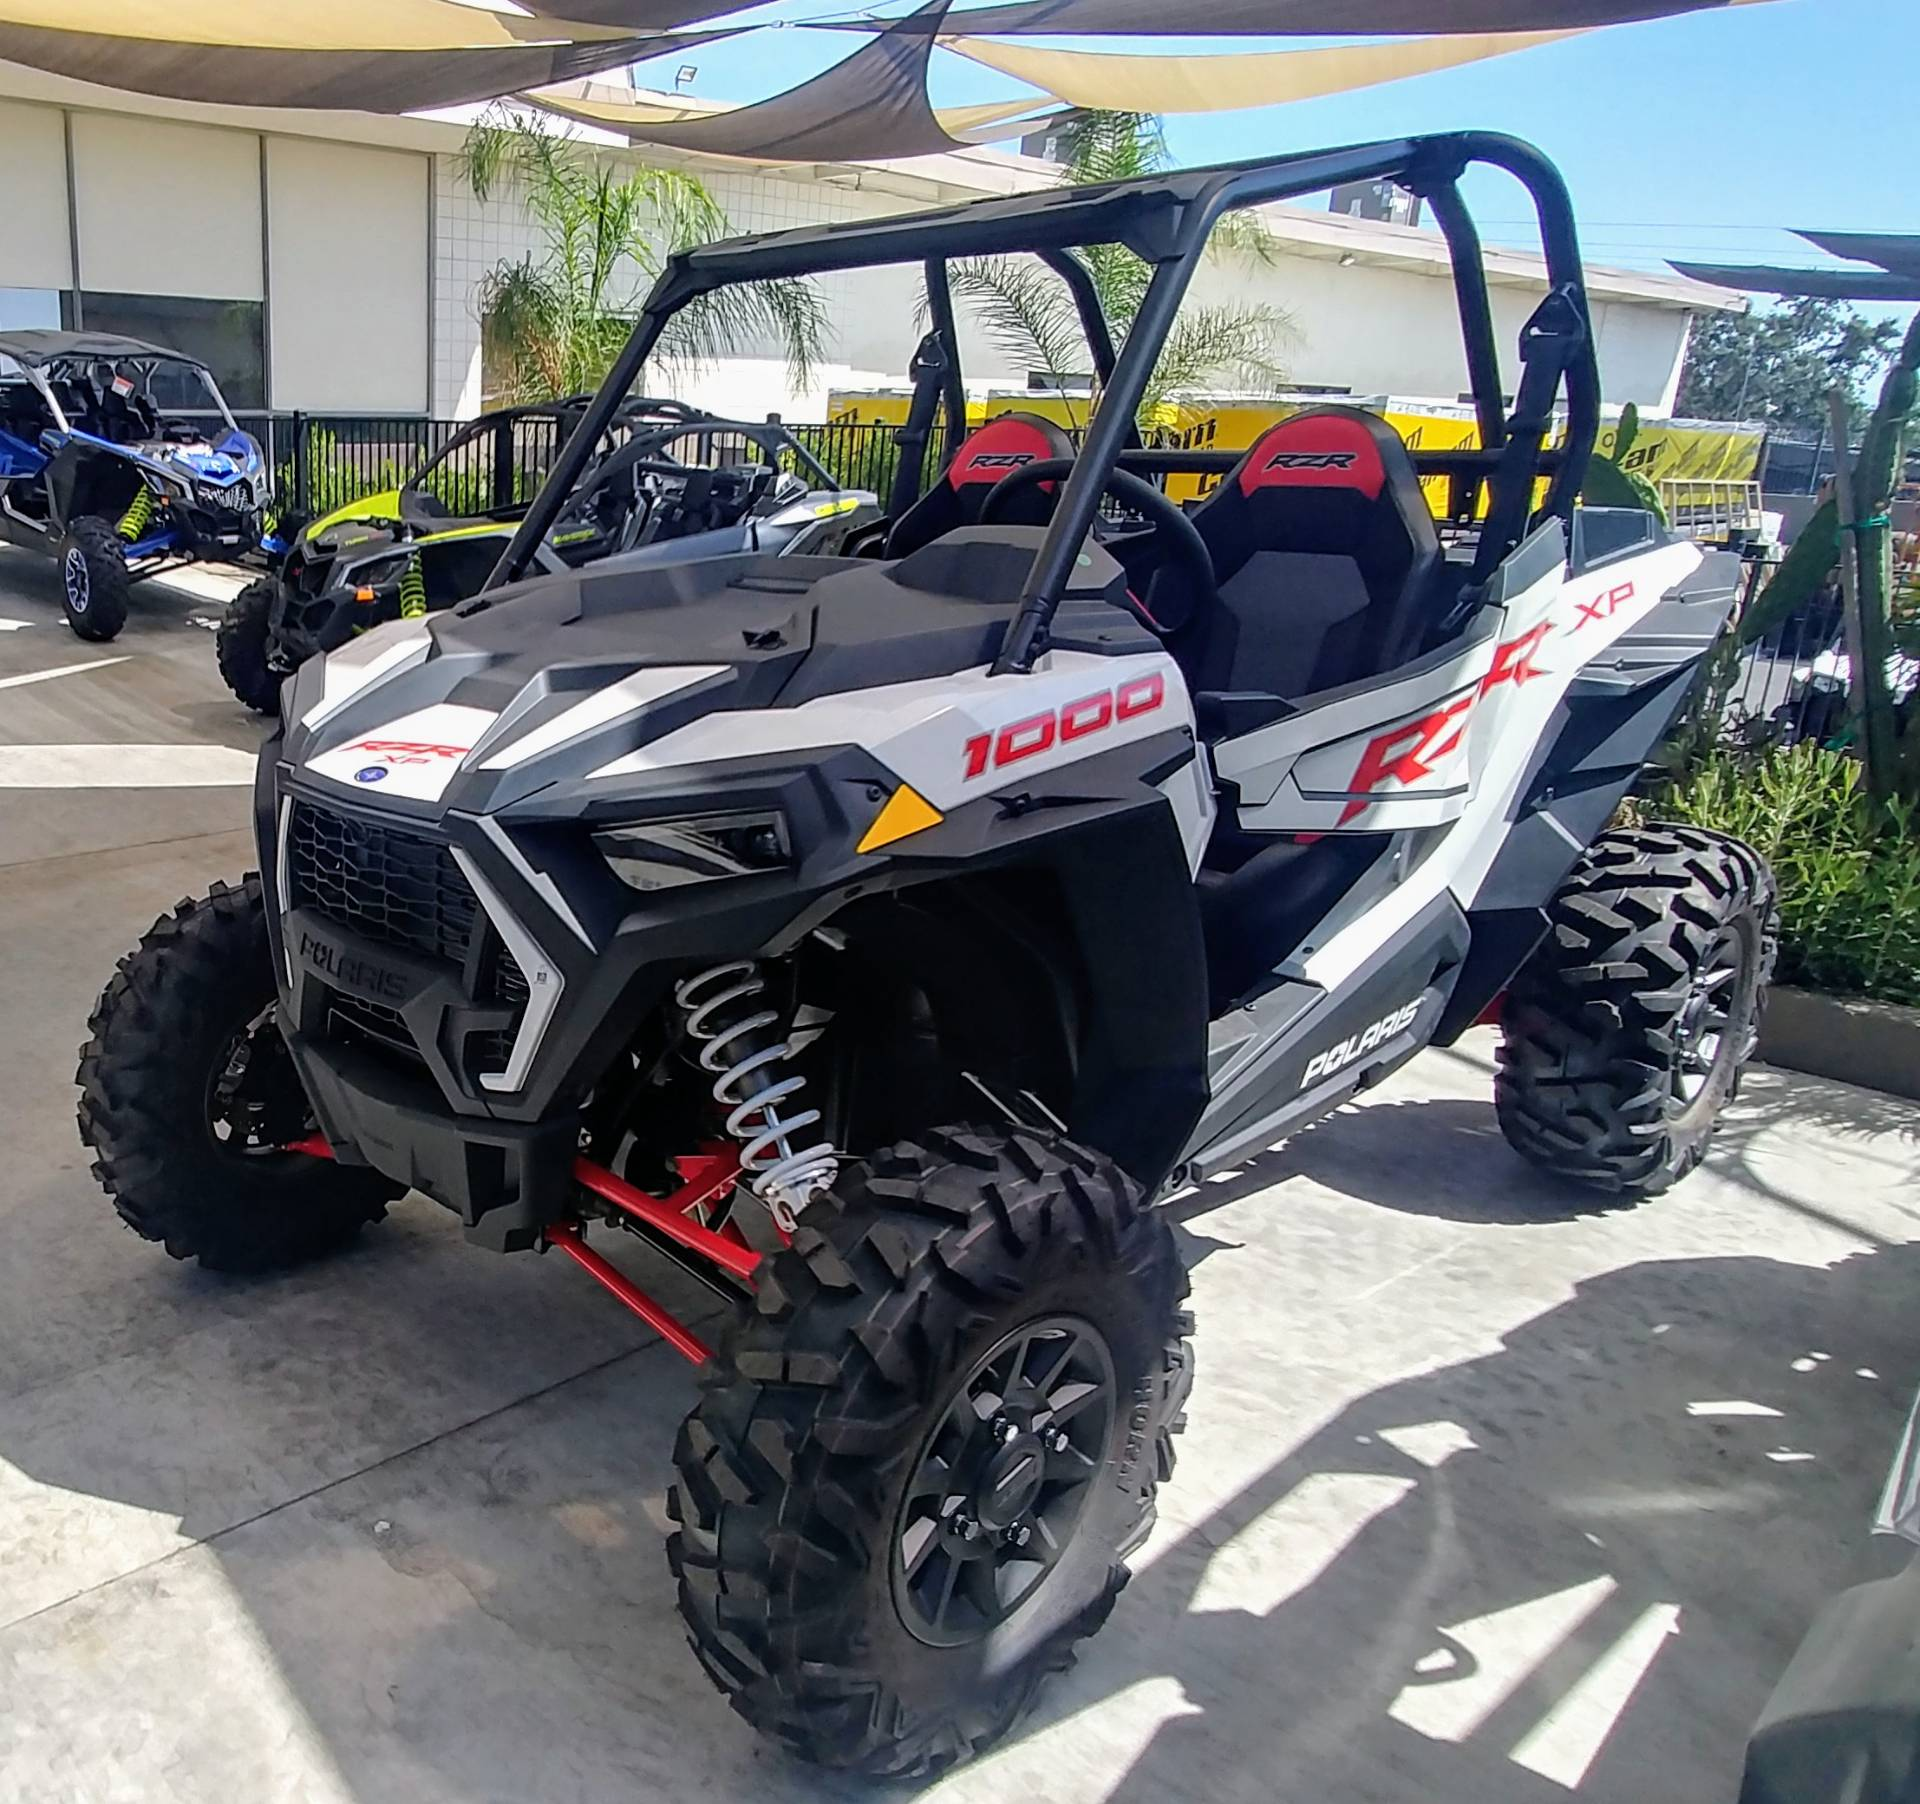 2020 Polaris RZR XP 1000 in Ontario, California - Photo 6